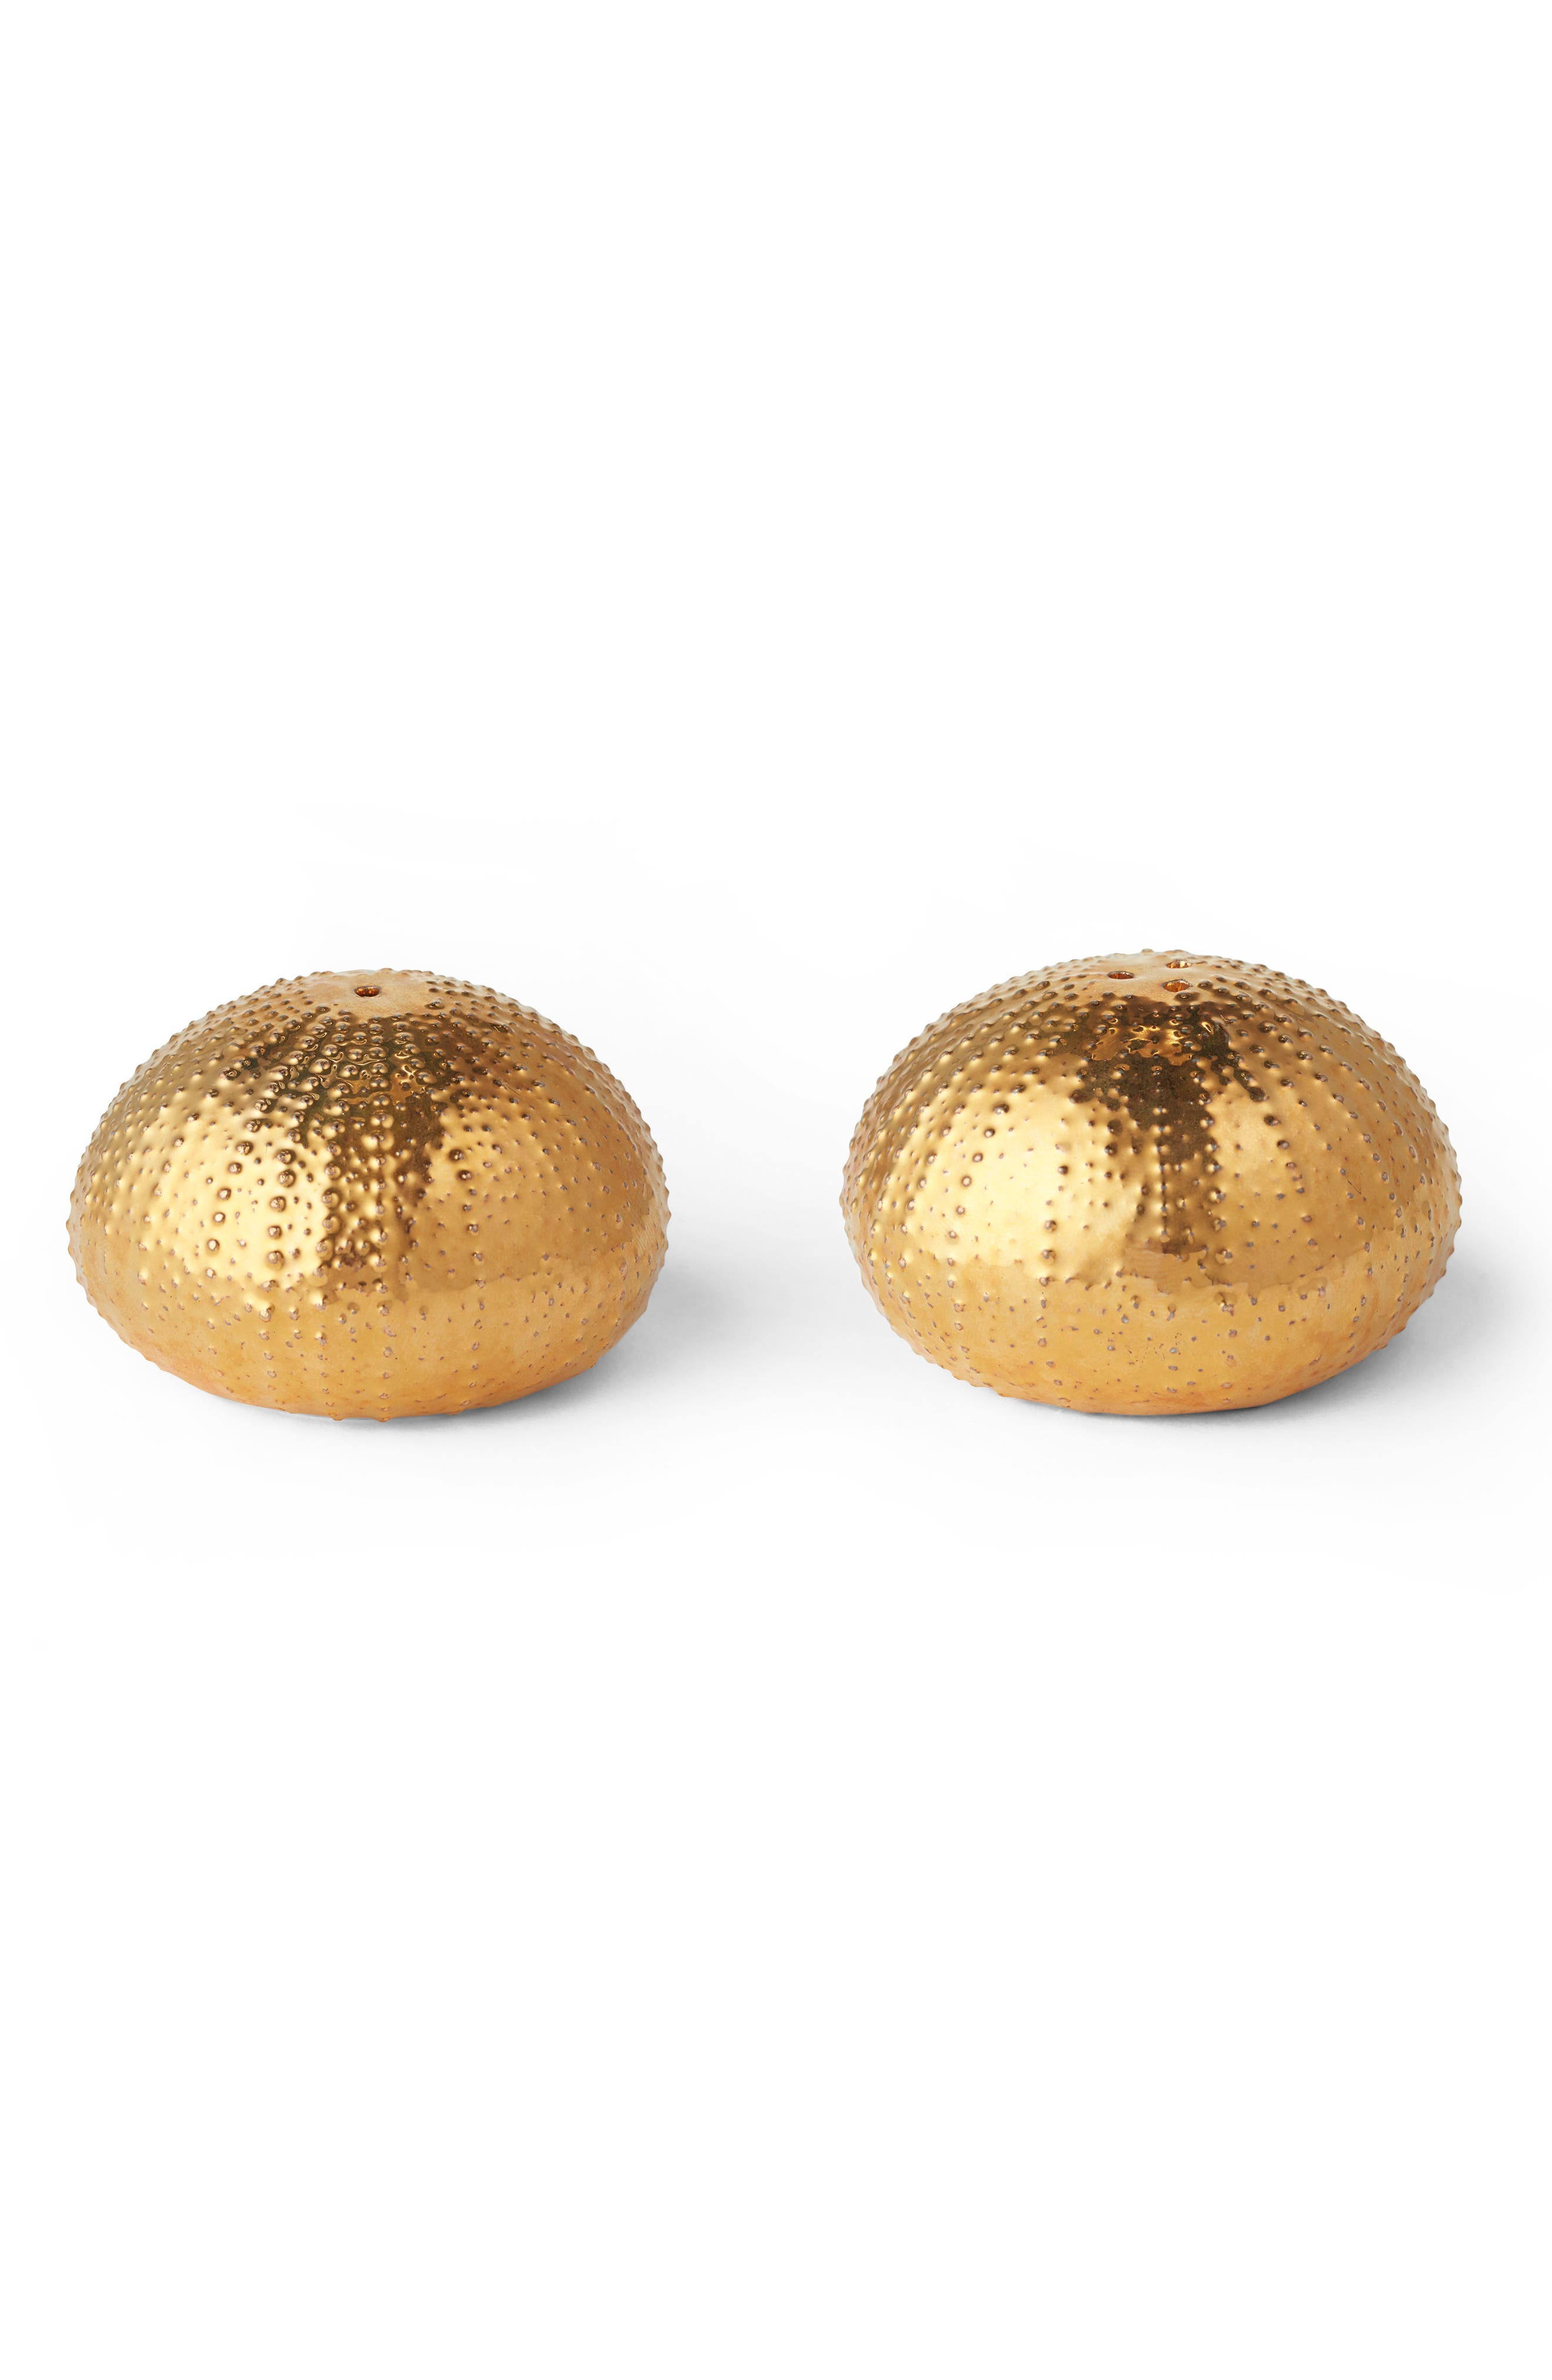 Sea Urchin Salt & Pepper Shakers,                         Main,                         color, GOLD